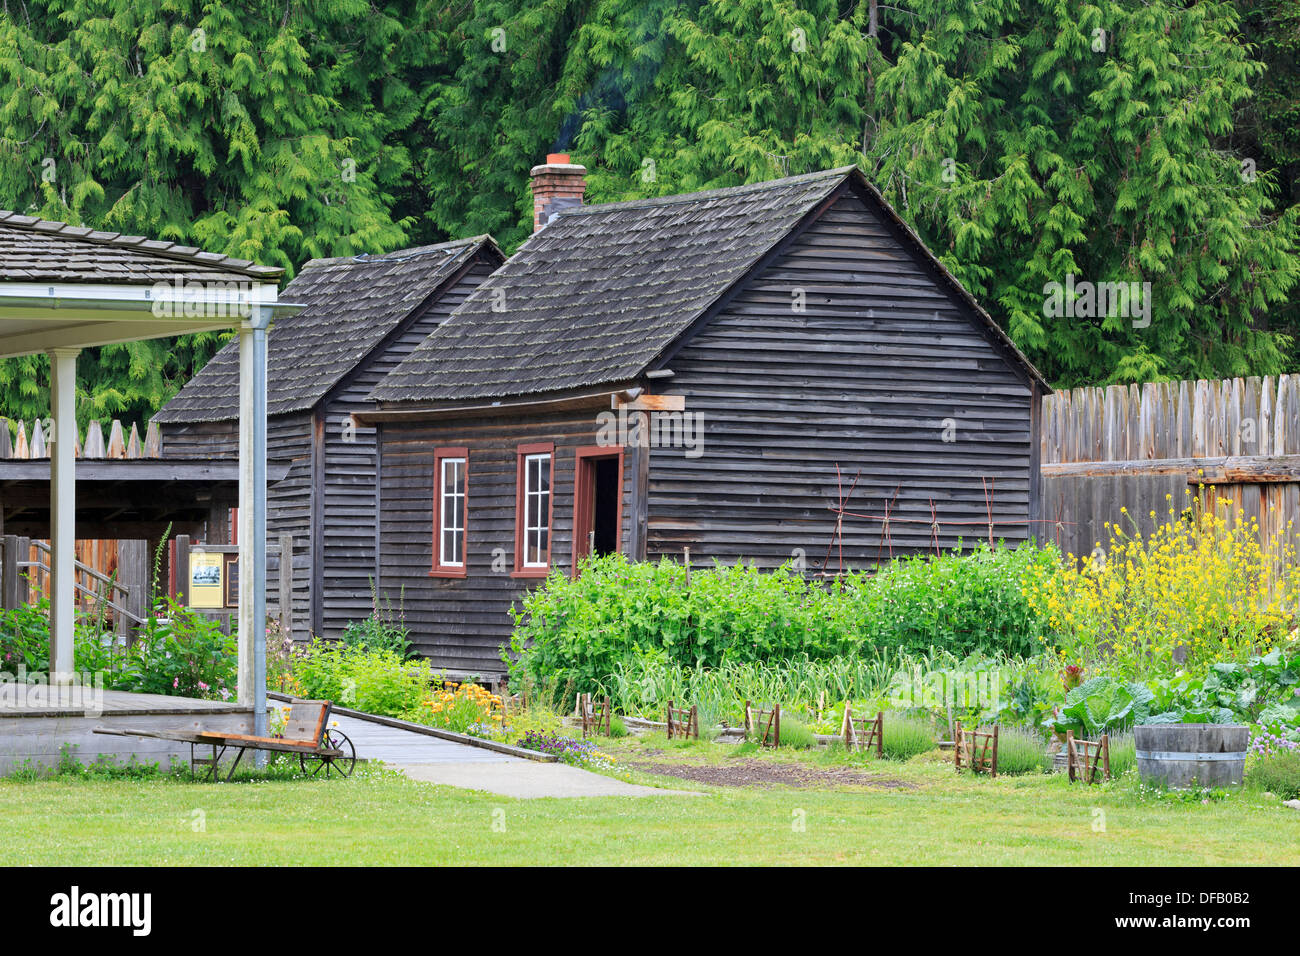 Fort Nisqually in Point Defiance Park,Tacoma,Washington State,USA - Stock Image